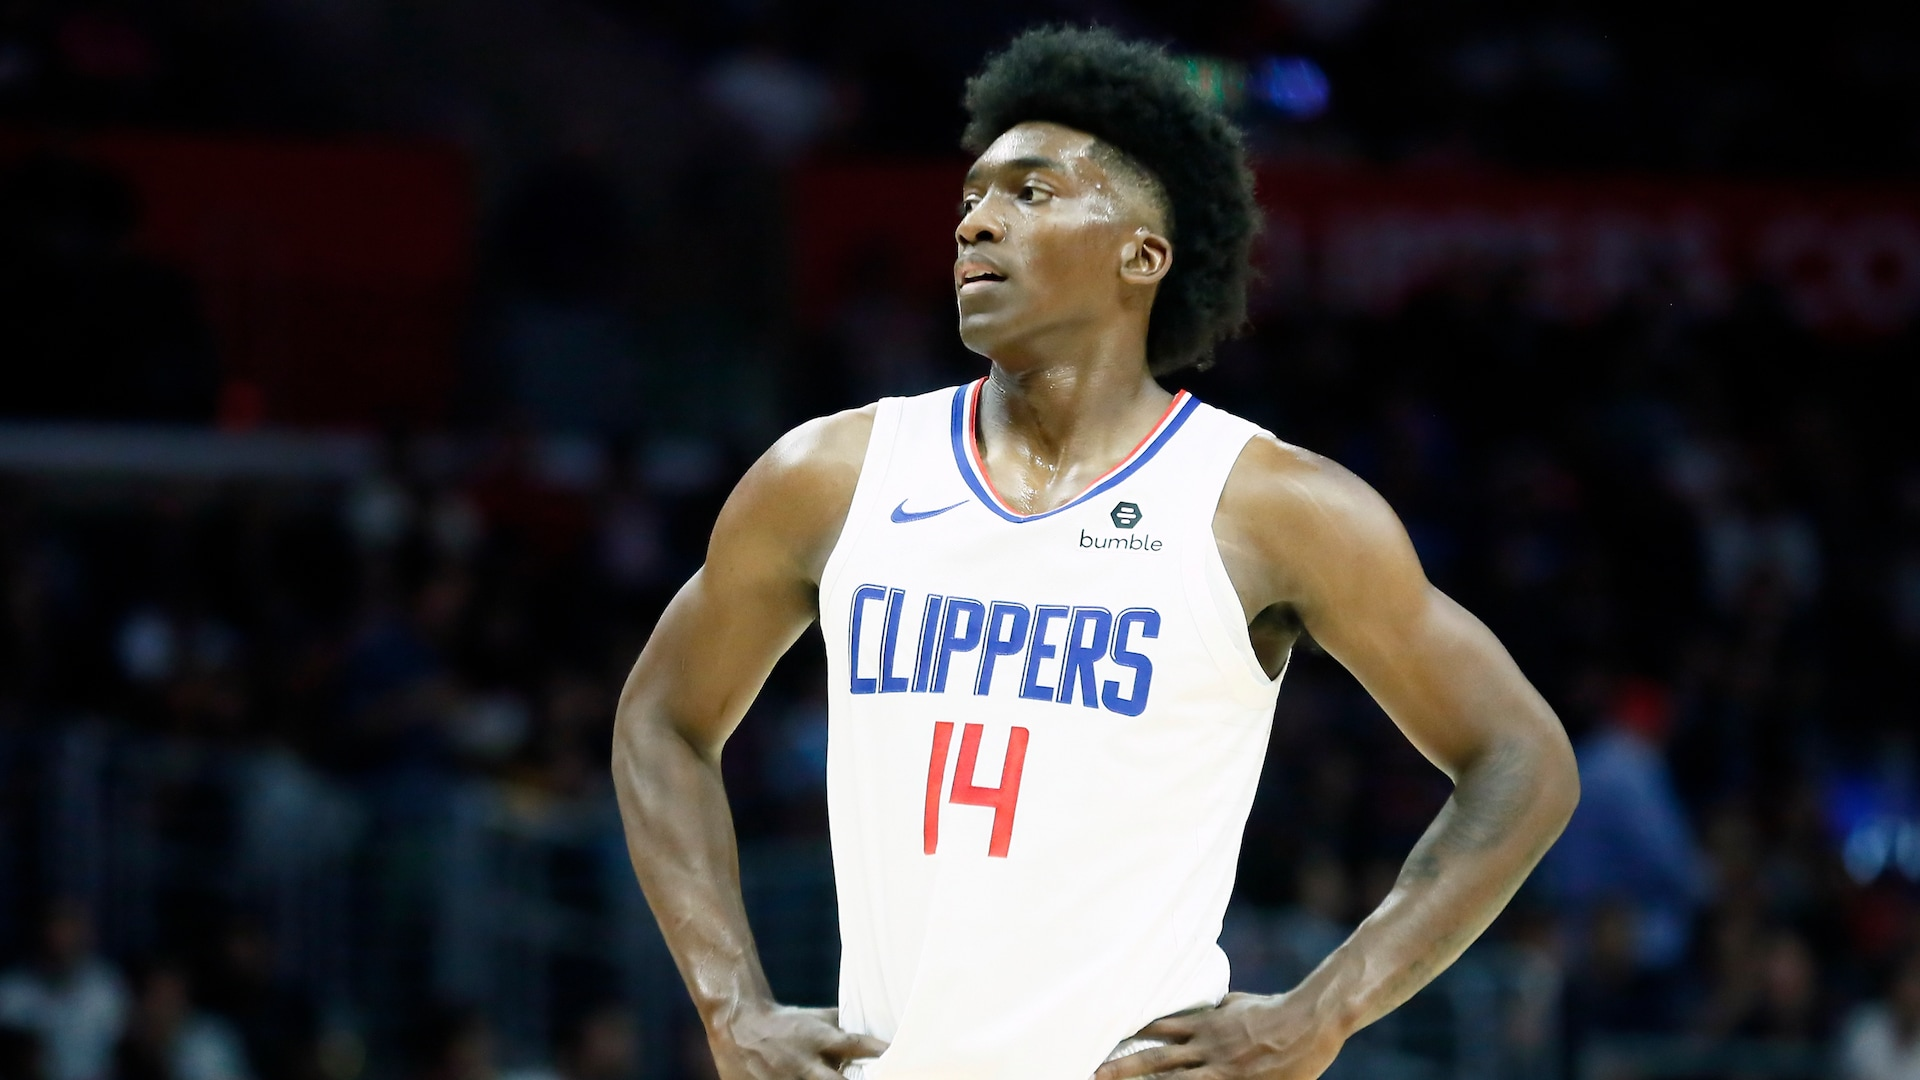 Clippers' Terance Mann has ligament surgery on right hand